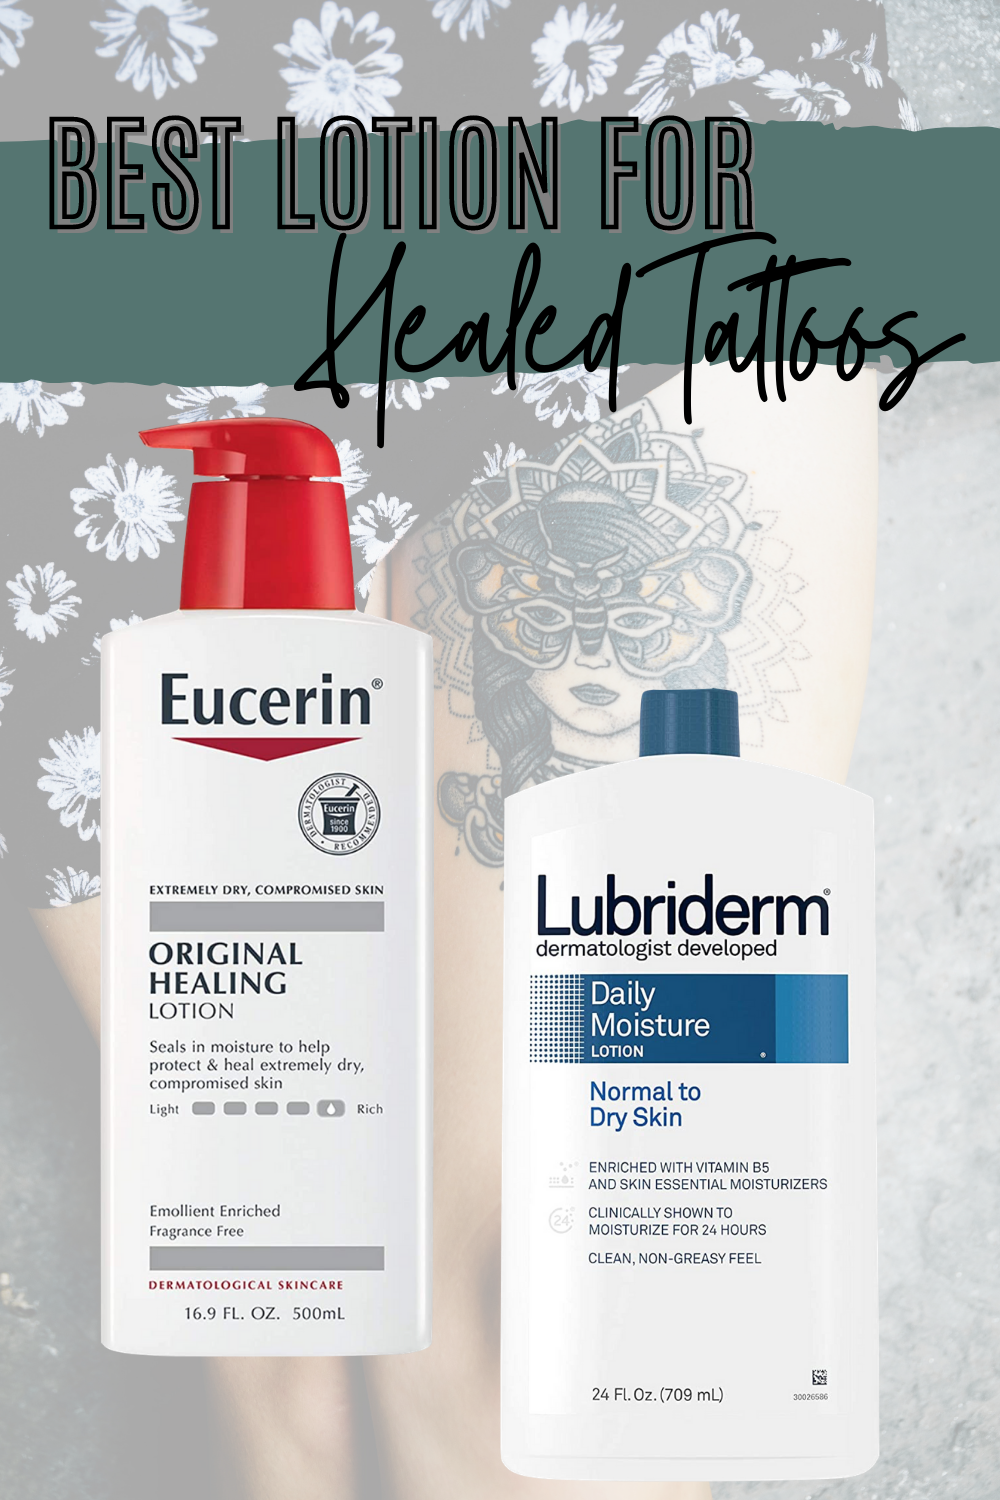 Best Lotion for Healing Tattoos